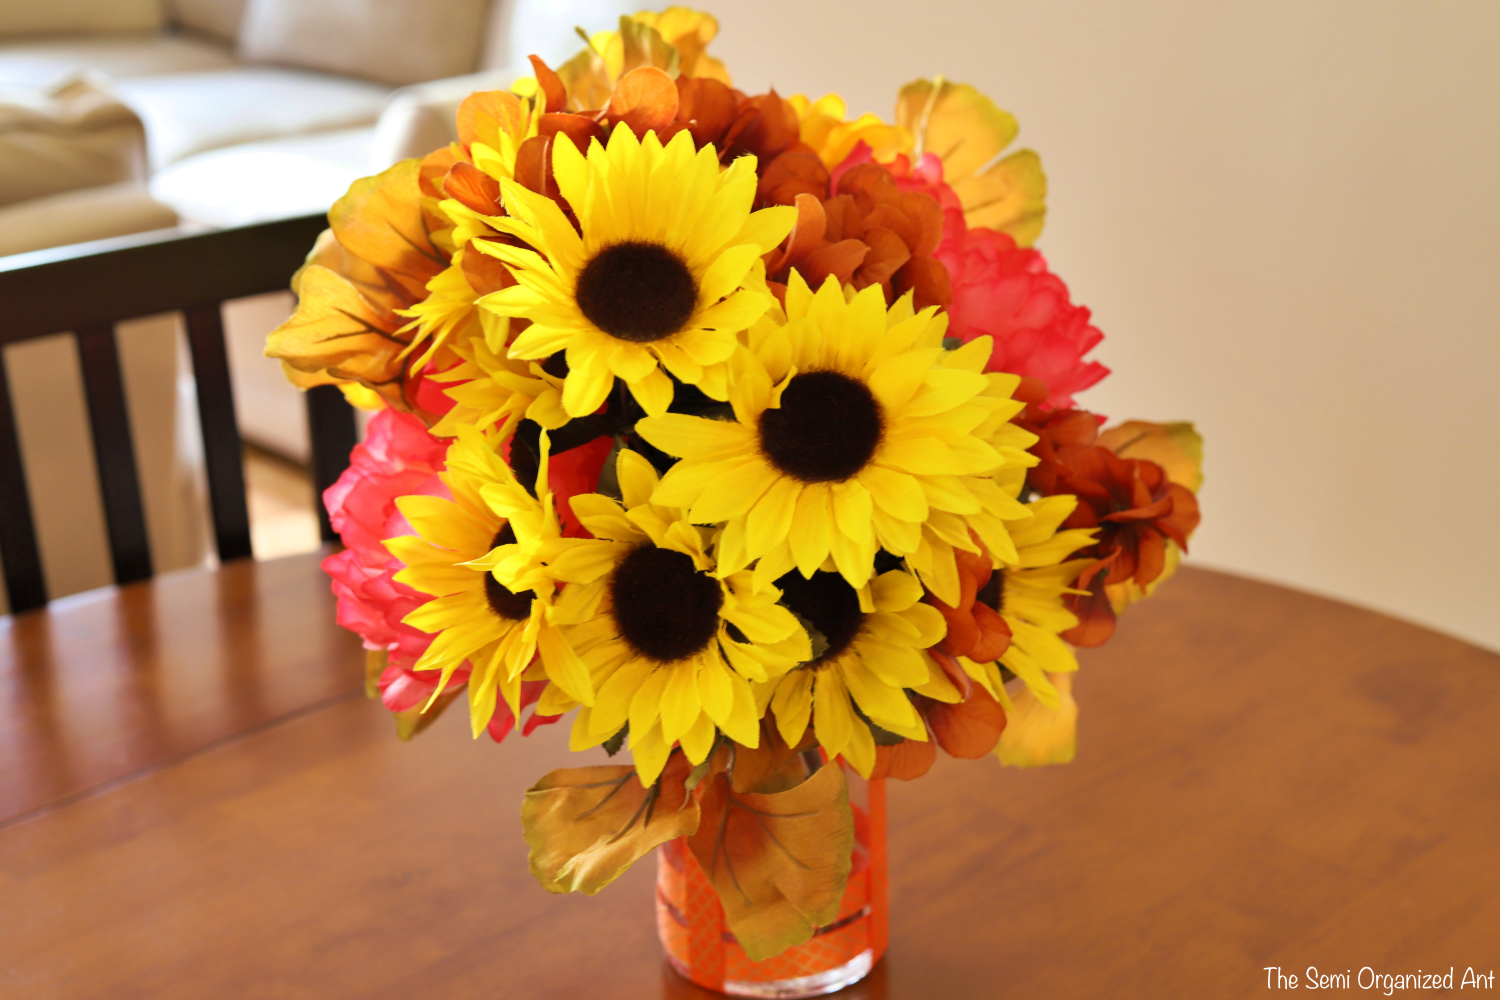 Combining Dollar Tree Flowers with Items I Already Have for the Perfect Fall Centerpiece - The Semi Organized Ant